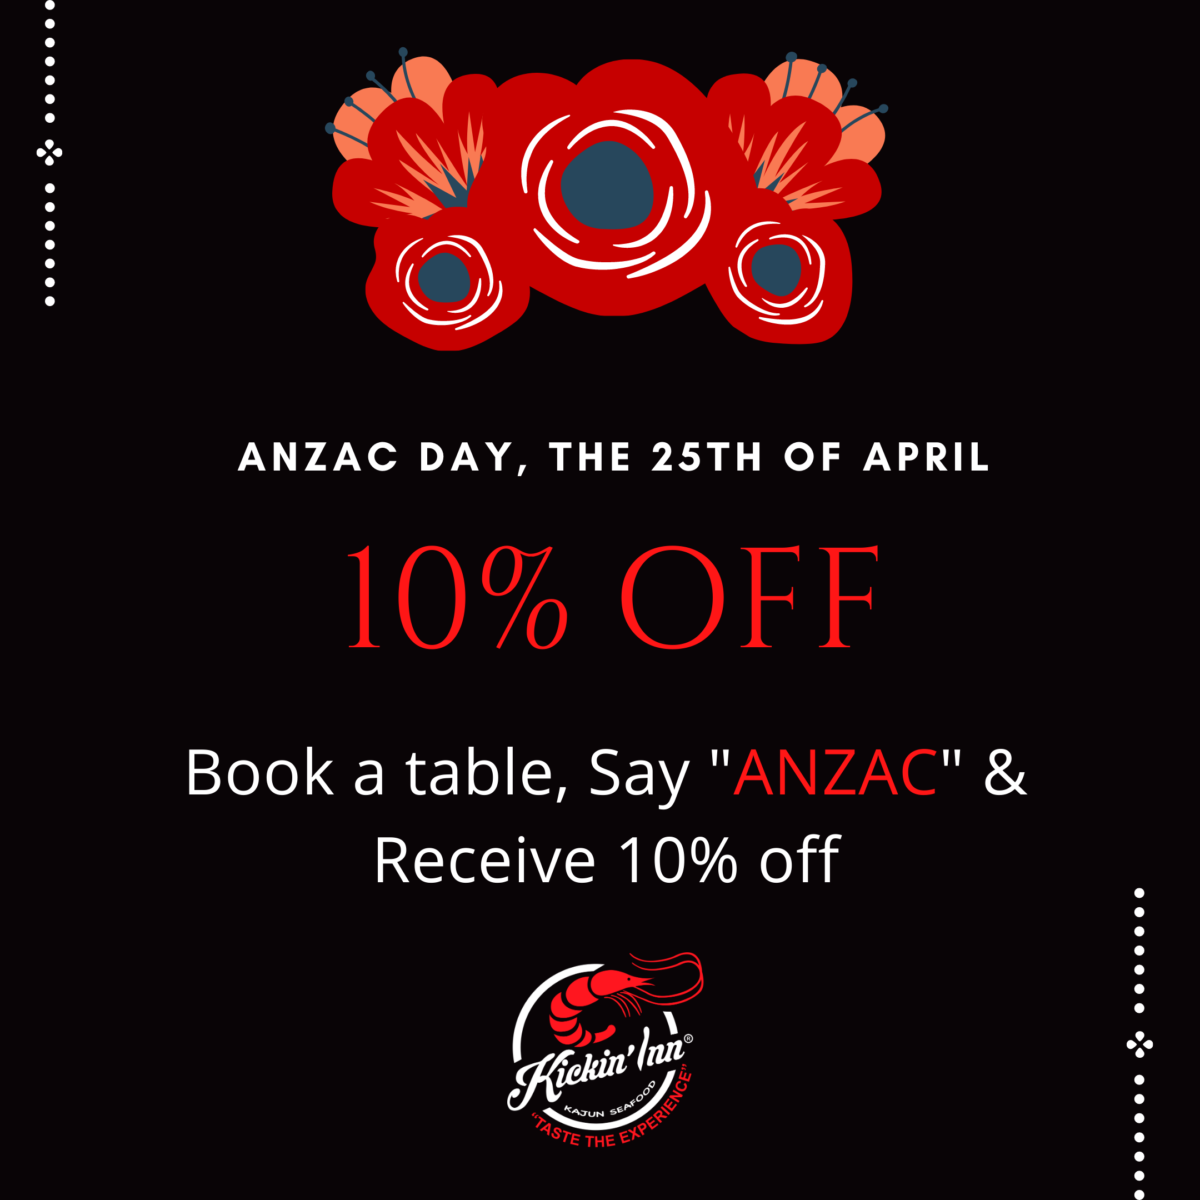 Receive 10% off on Anzac Day